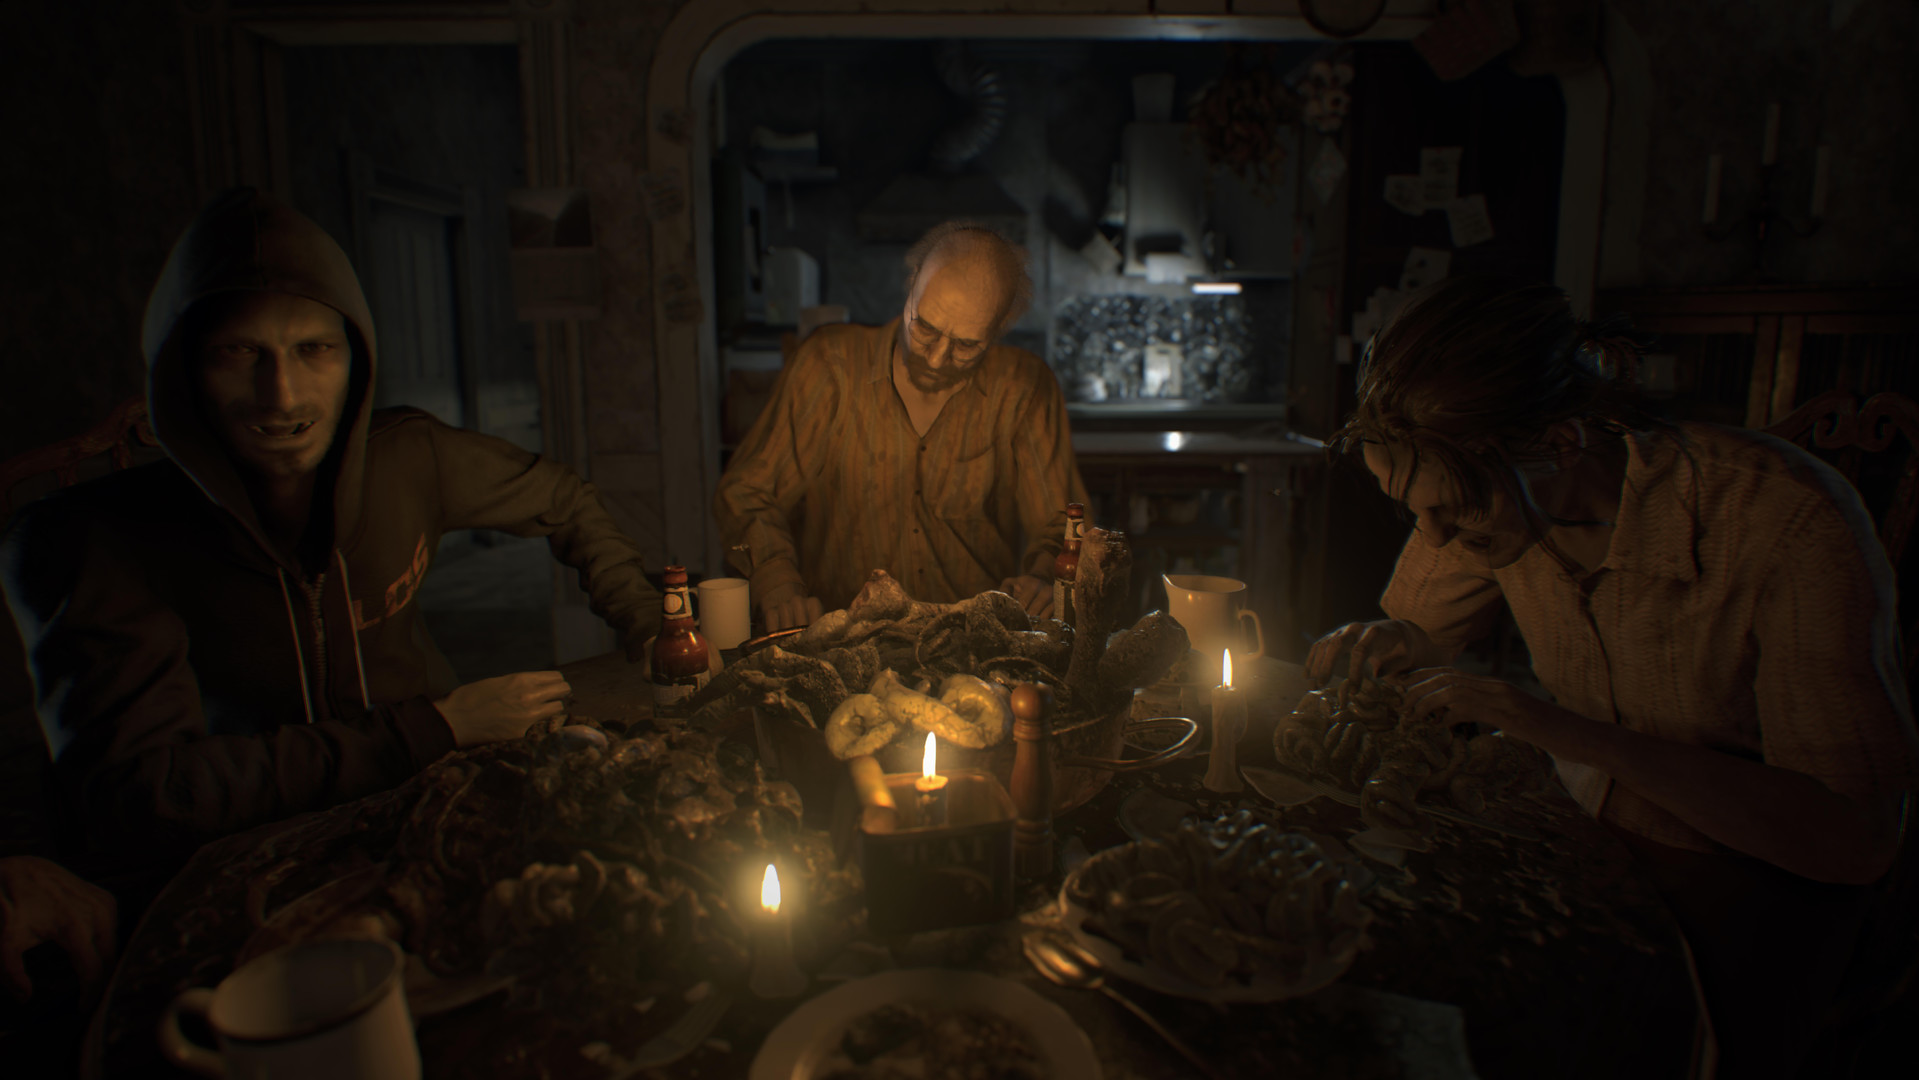 A screenshot of the horrible Baker family arranged around their horrible dinner table in Resident Evil 7